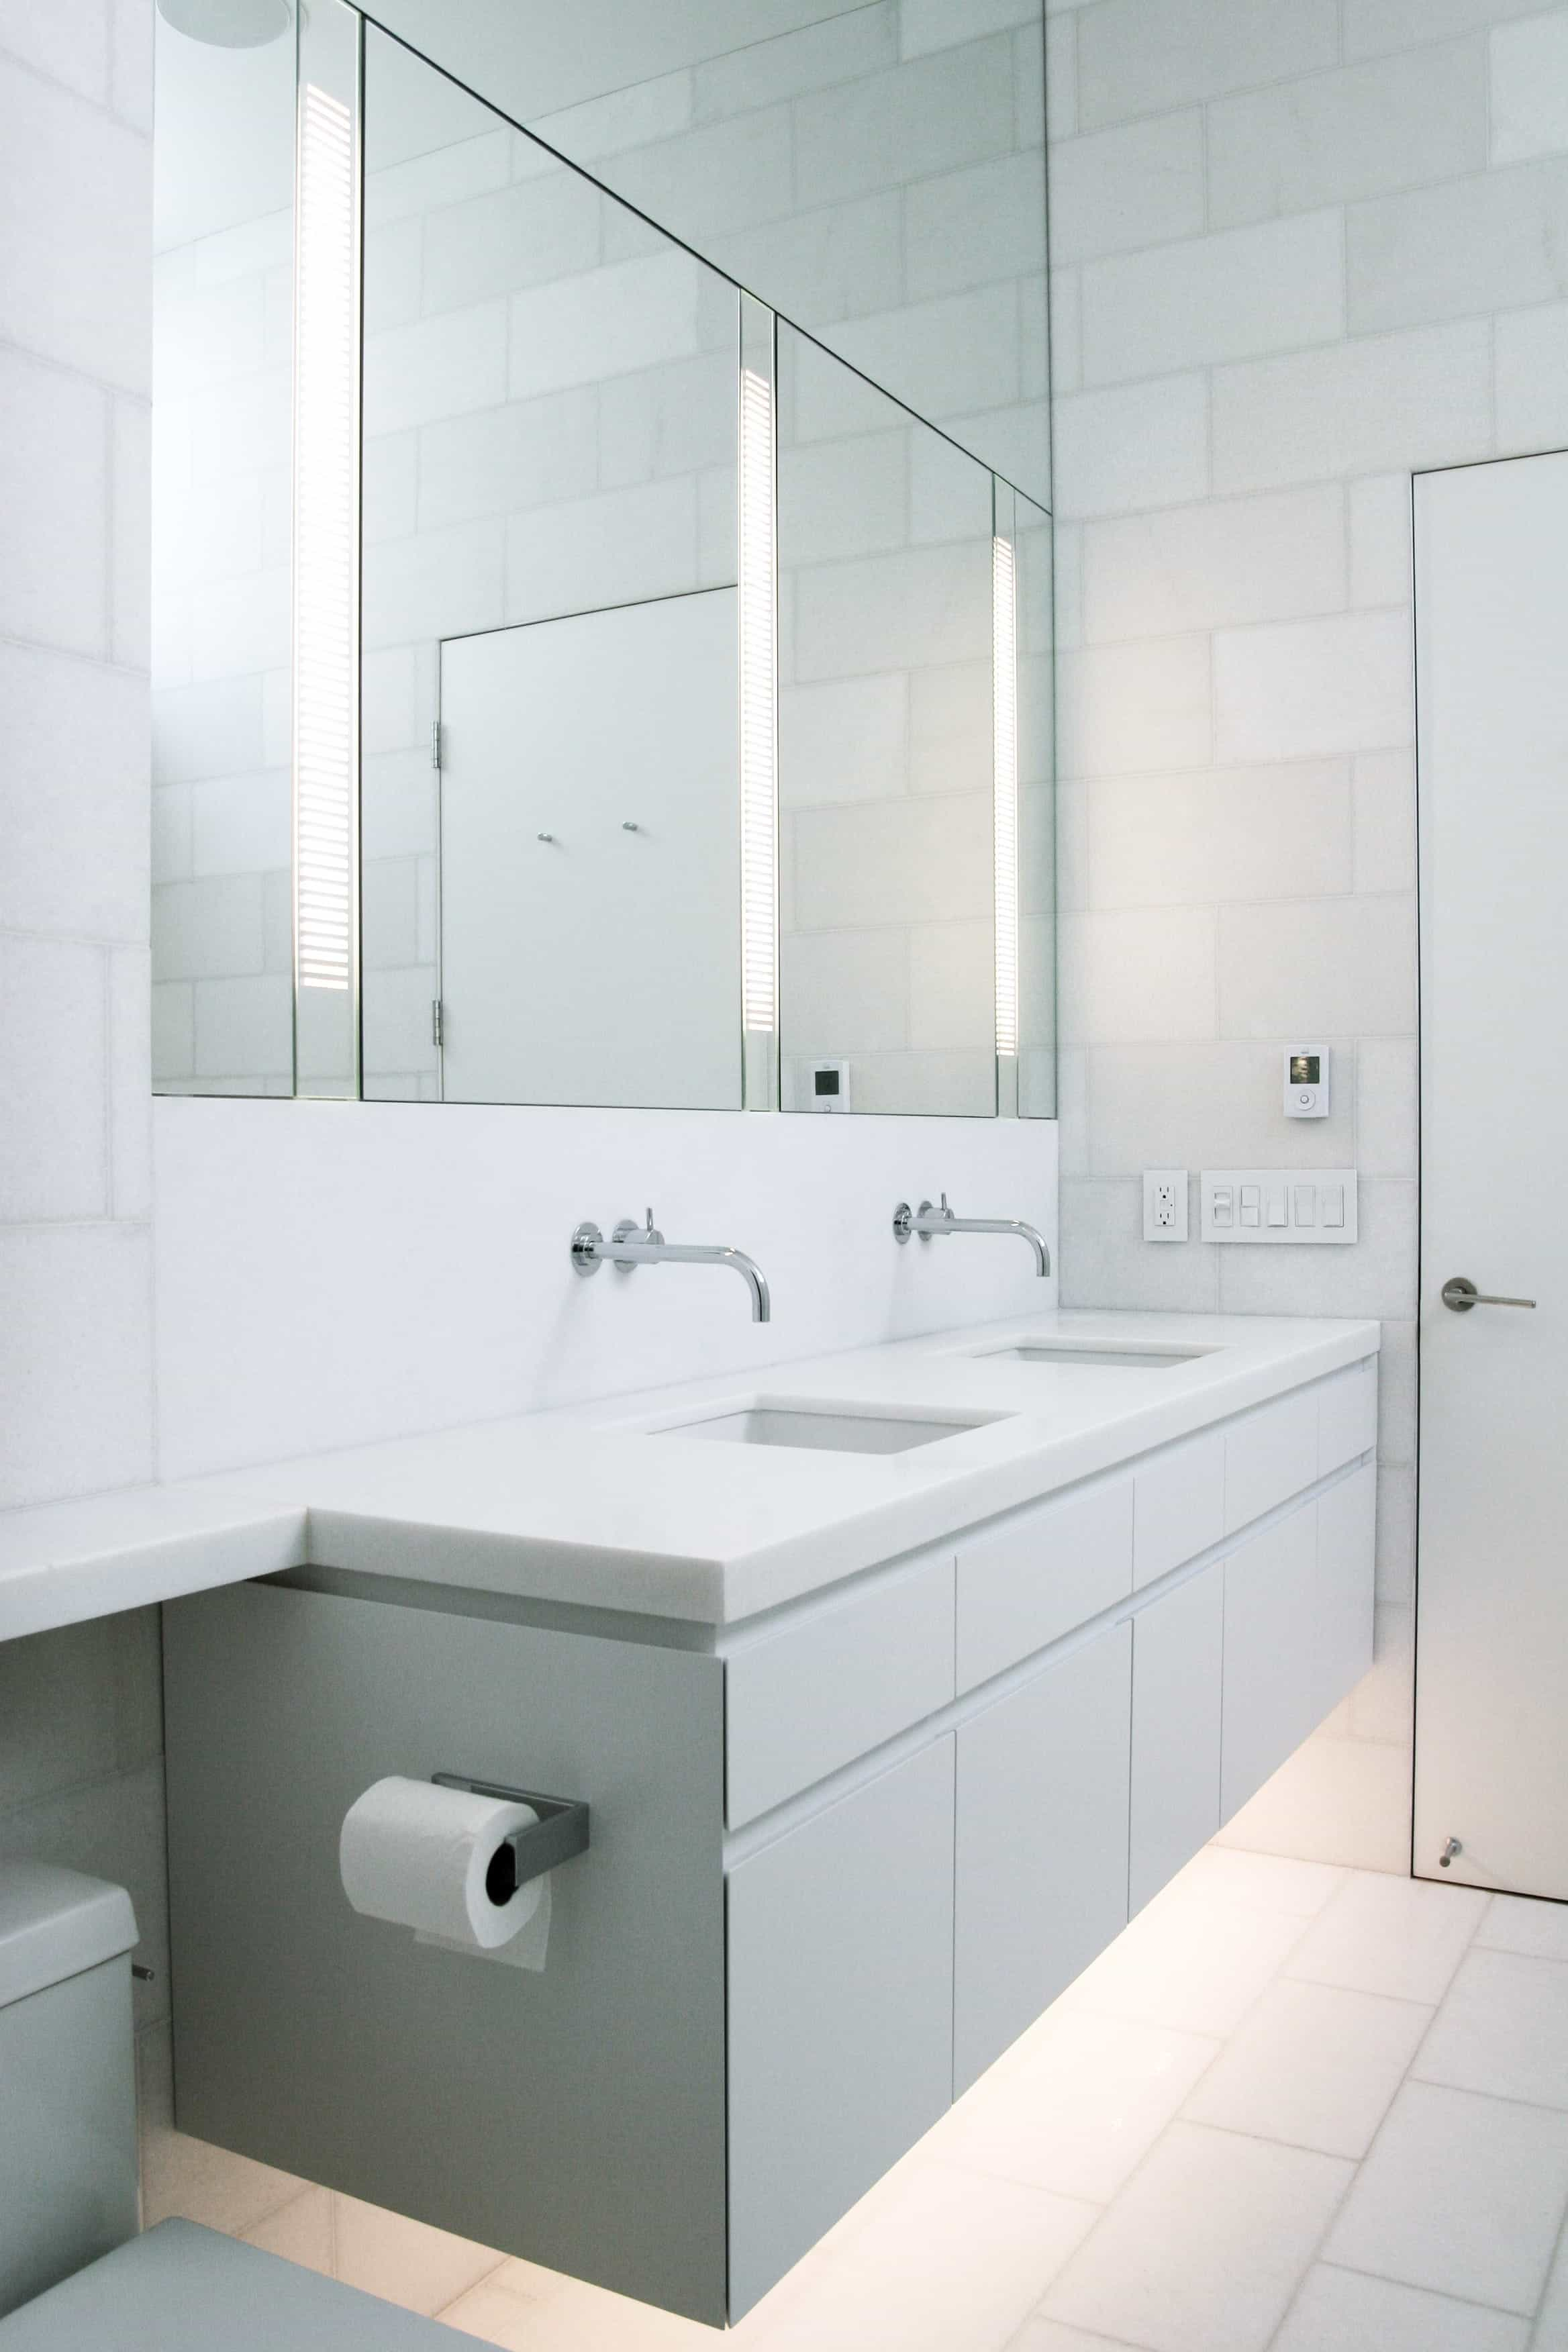 Modern Bathroom With Double Vanity And Large Mirrors With Light Fixtures (Image 13 of 20)